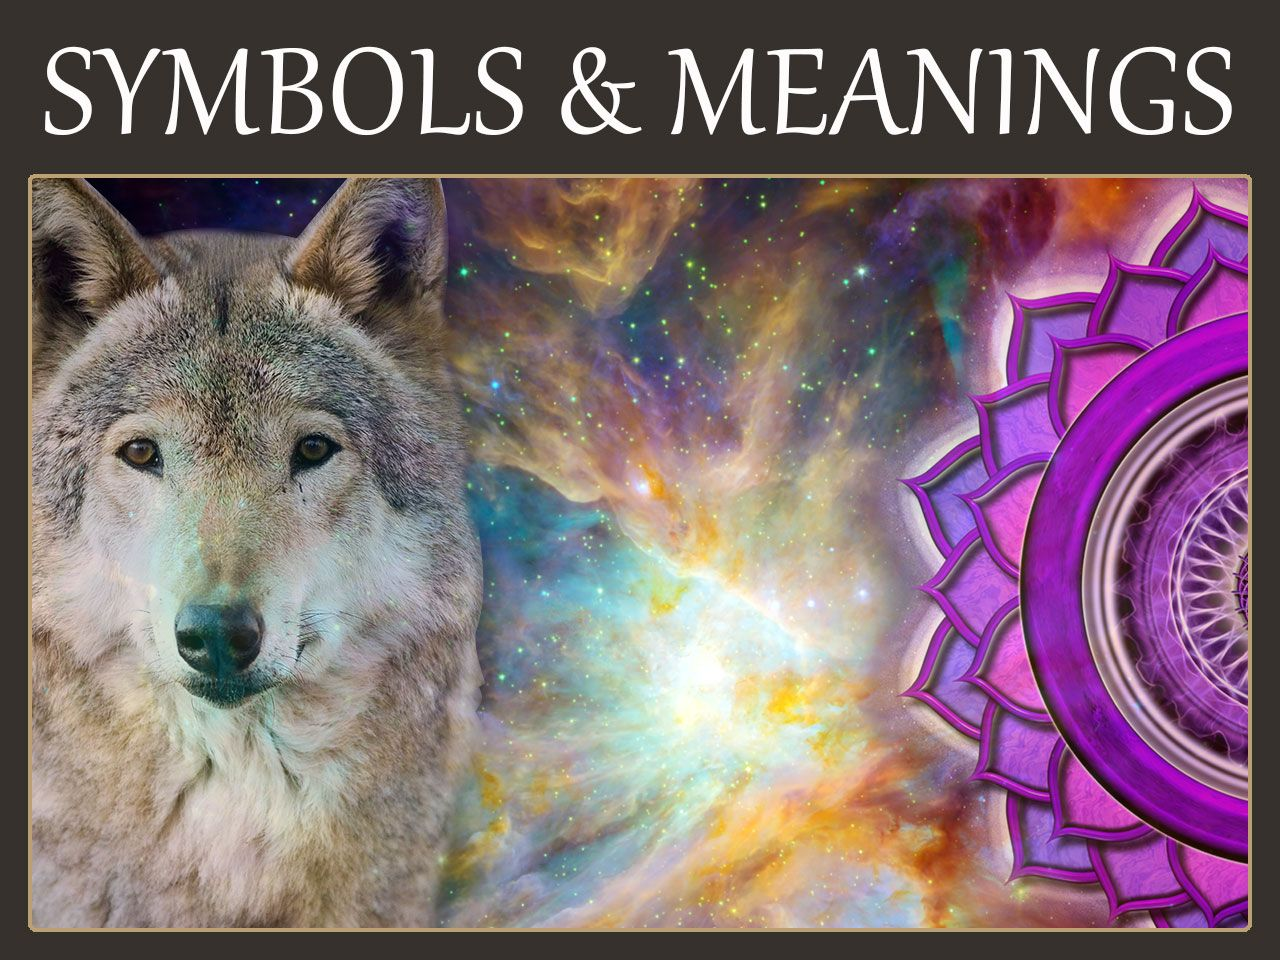 Symbols and meanings animals crystals dreams flowers native symbols symbolism meanings 1280x960 buycottarizona